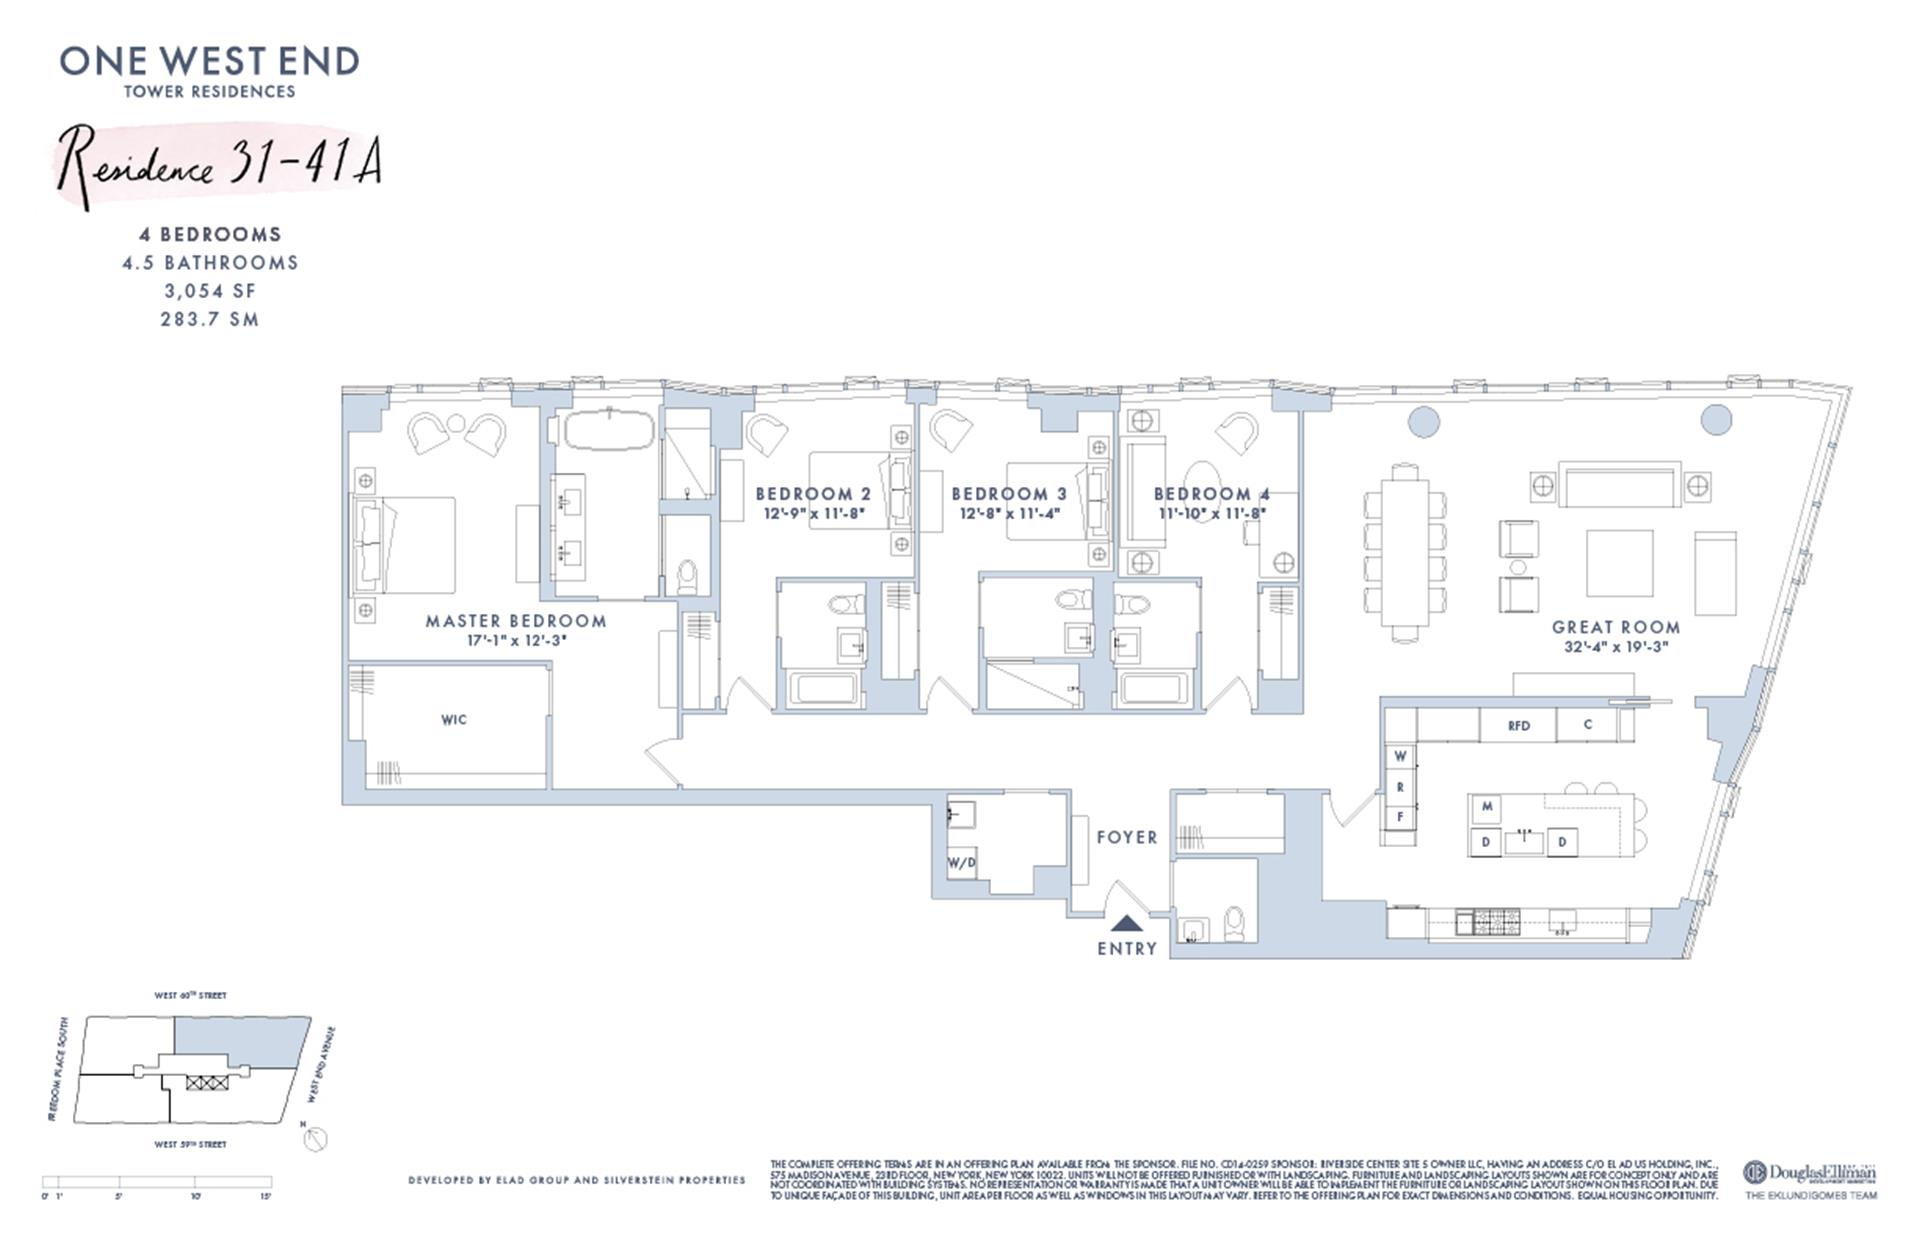 Floor plan of One West End, 1 West End Avenue, 34A - Upper West Side, New York